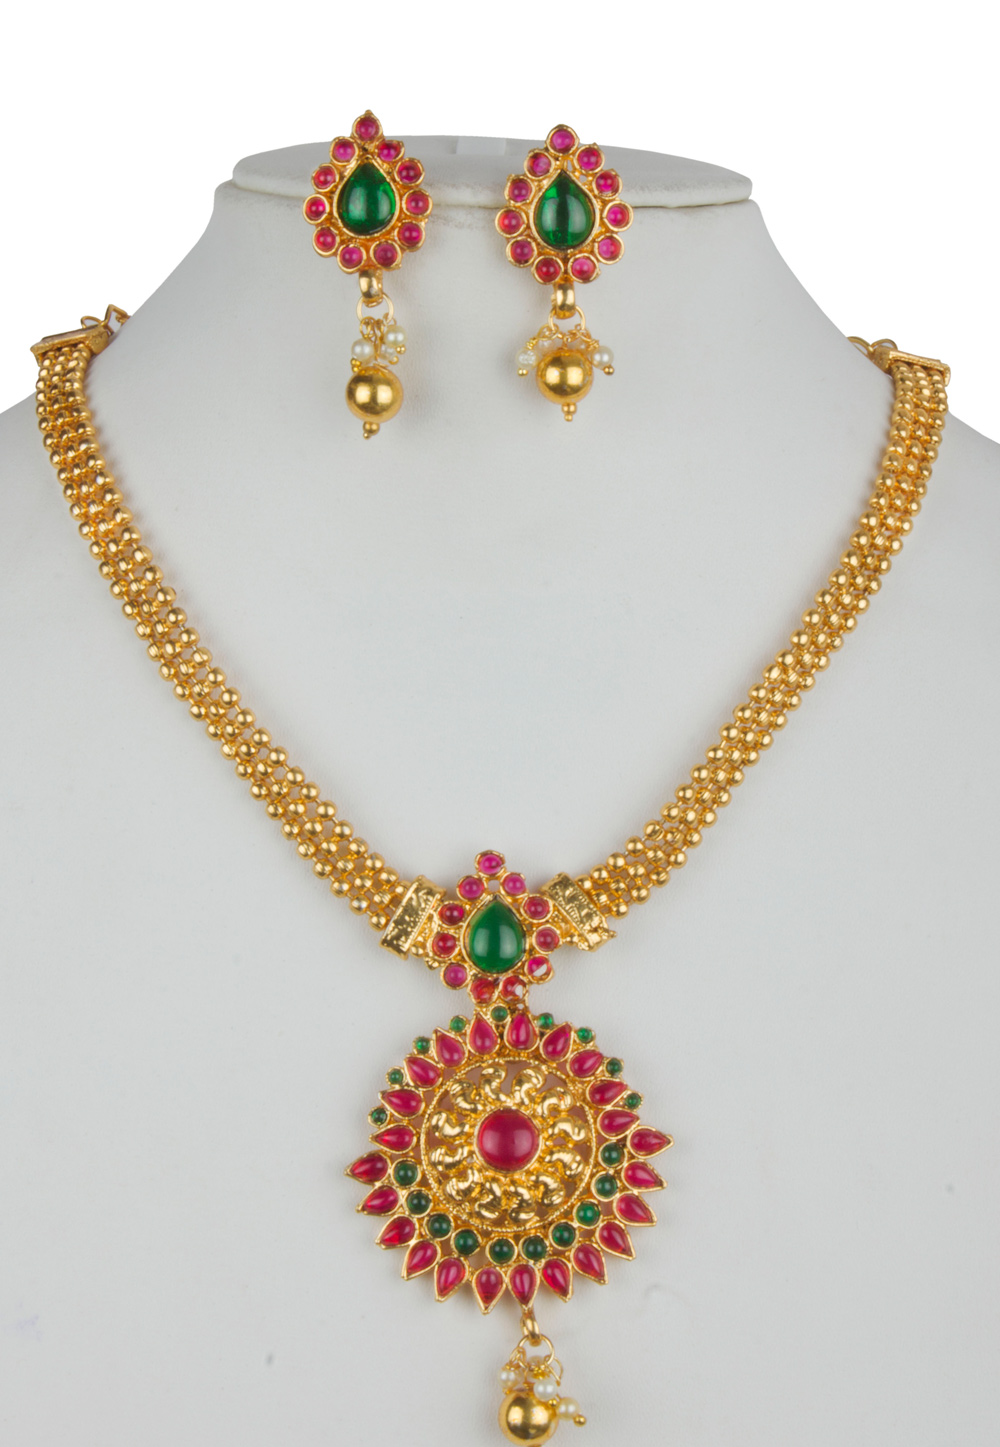 Pink Alloy Necklace With Earrings 157149